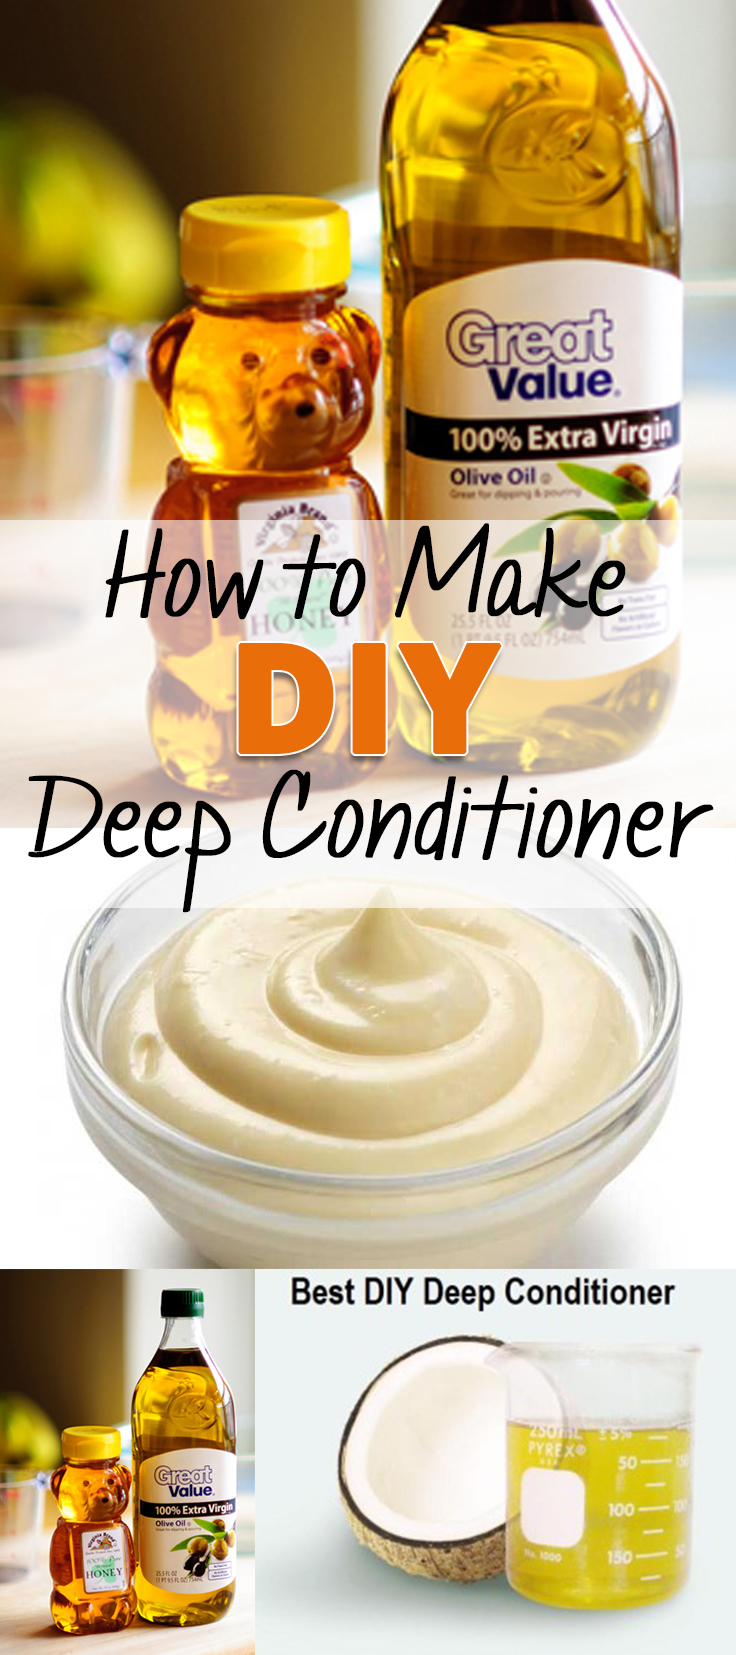 How to Make DIY Deep Conditioner